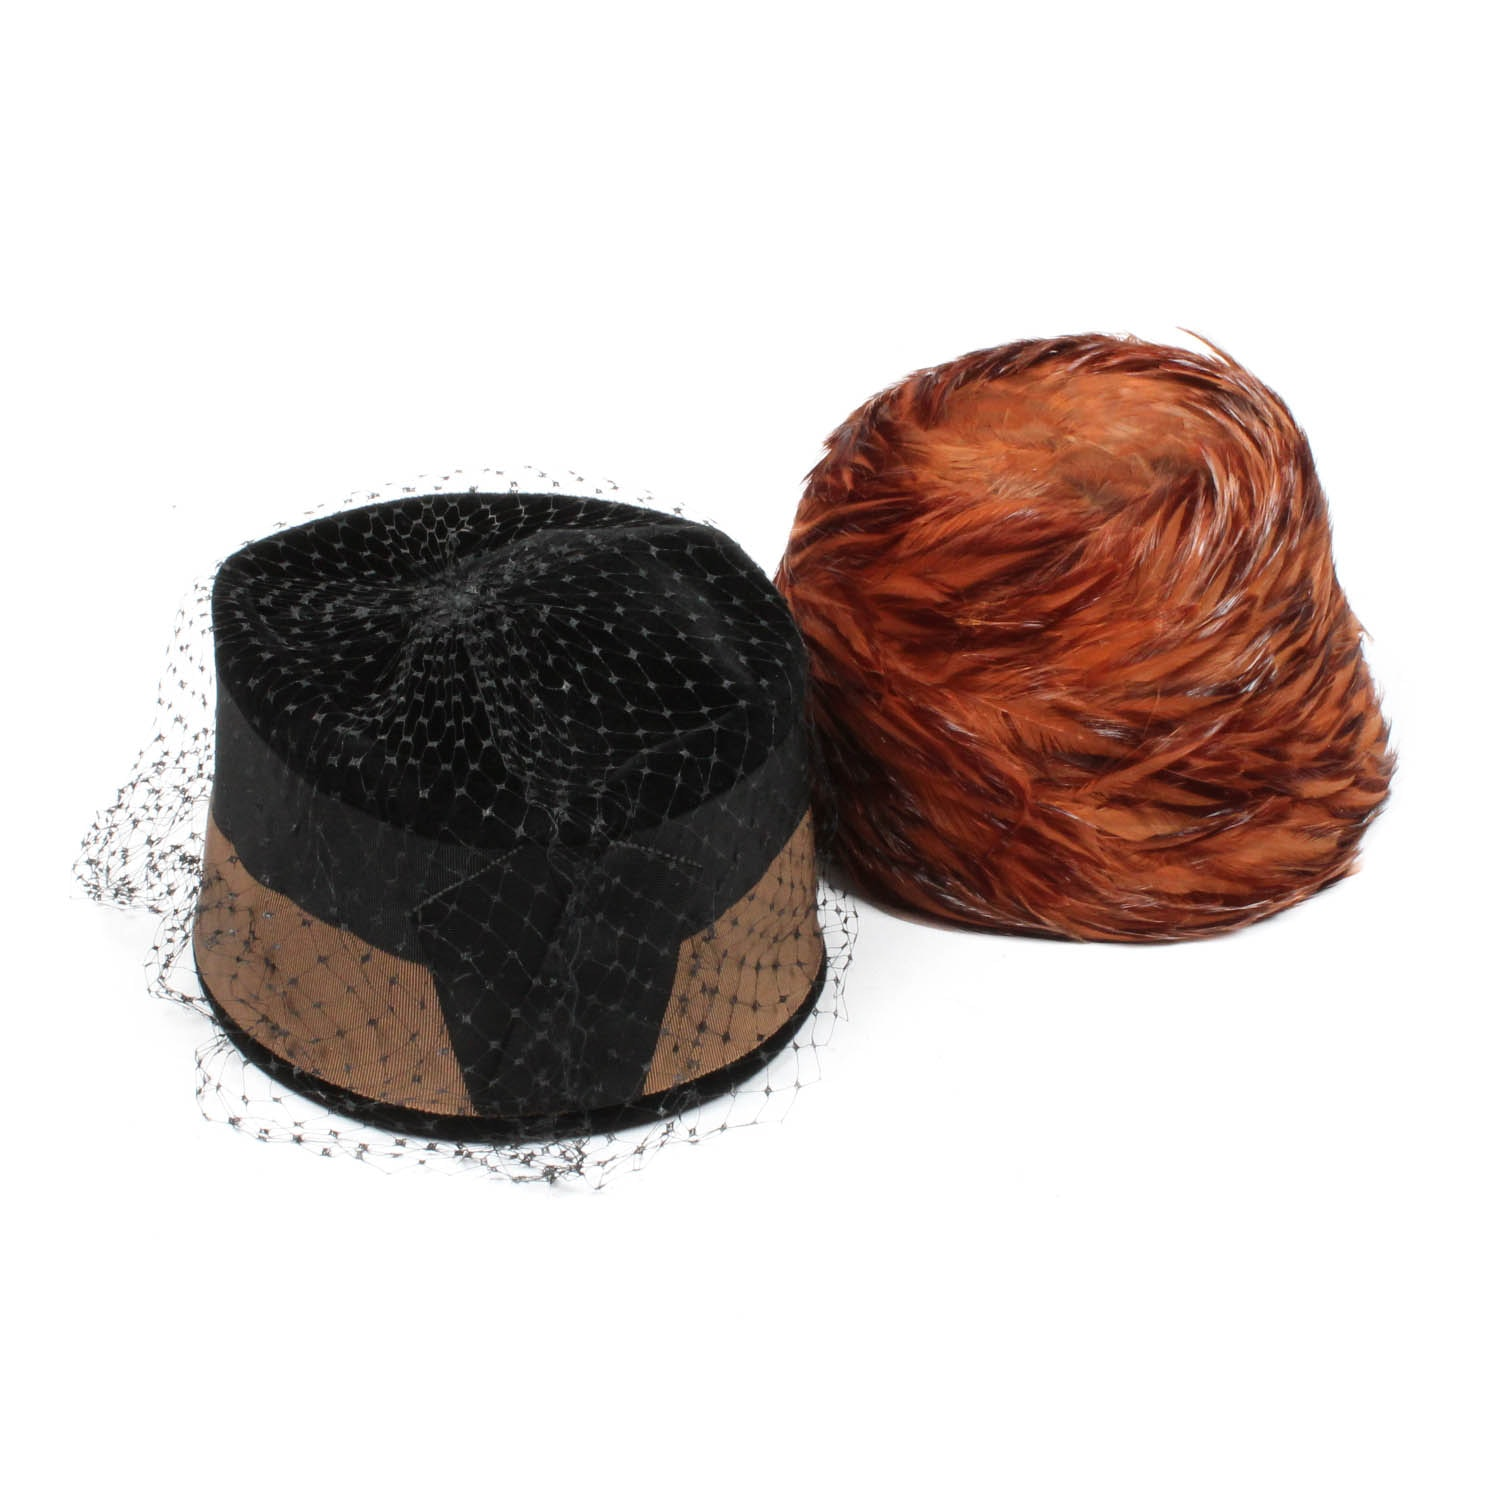 Women's Vintage Hats in Wool and with Feathers